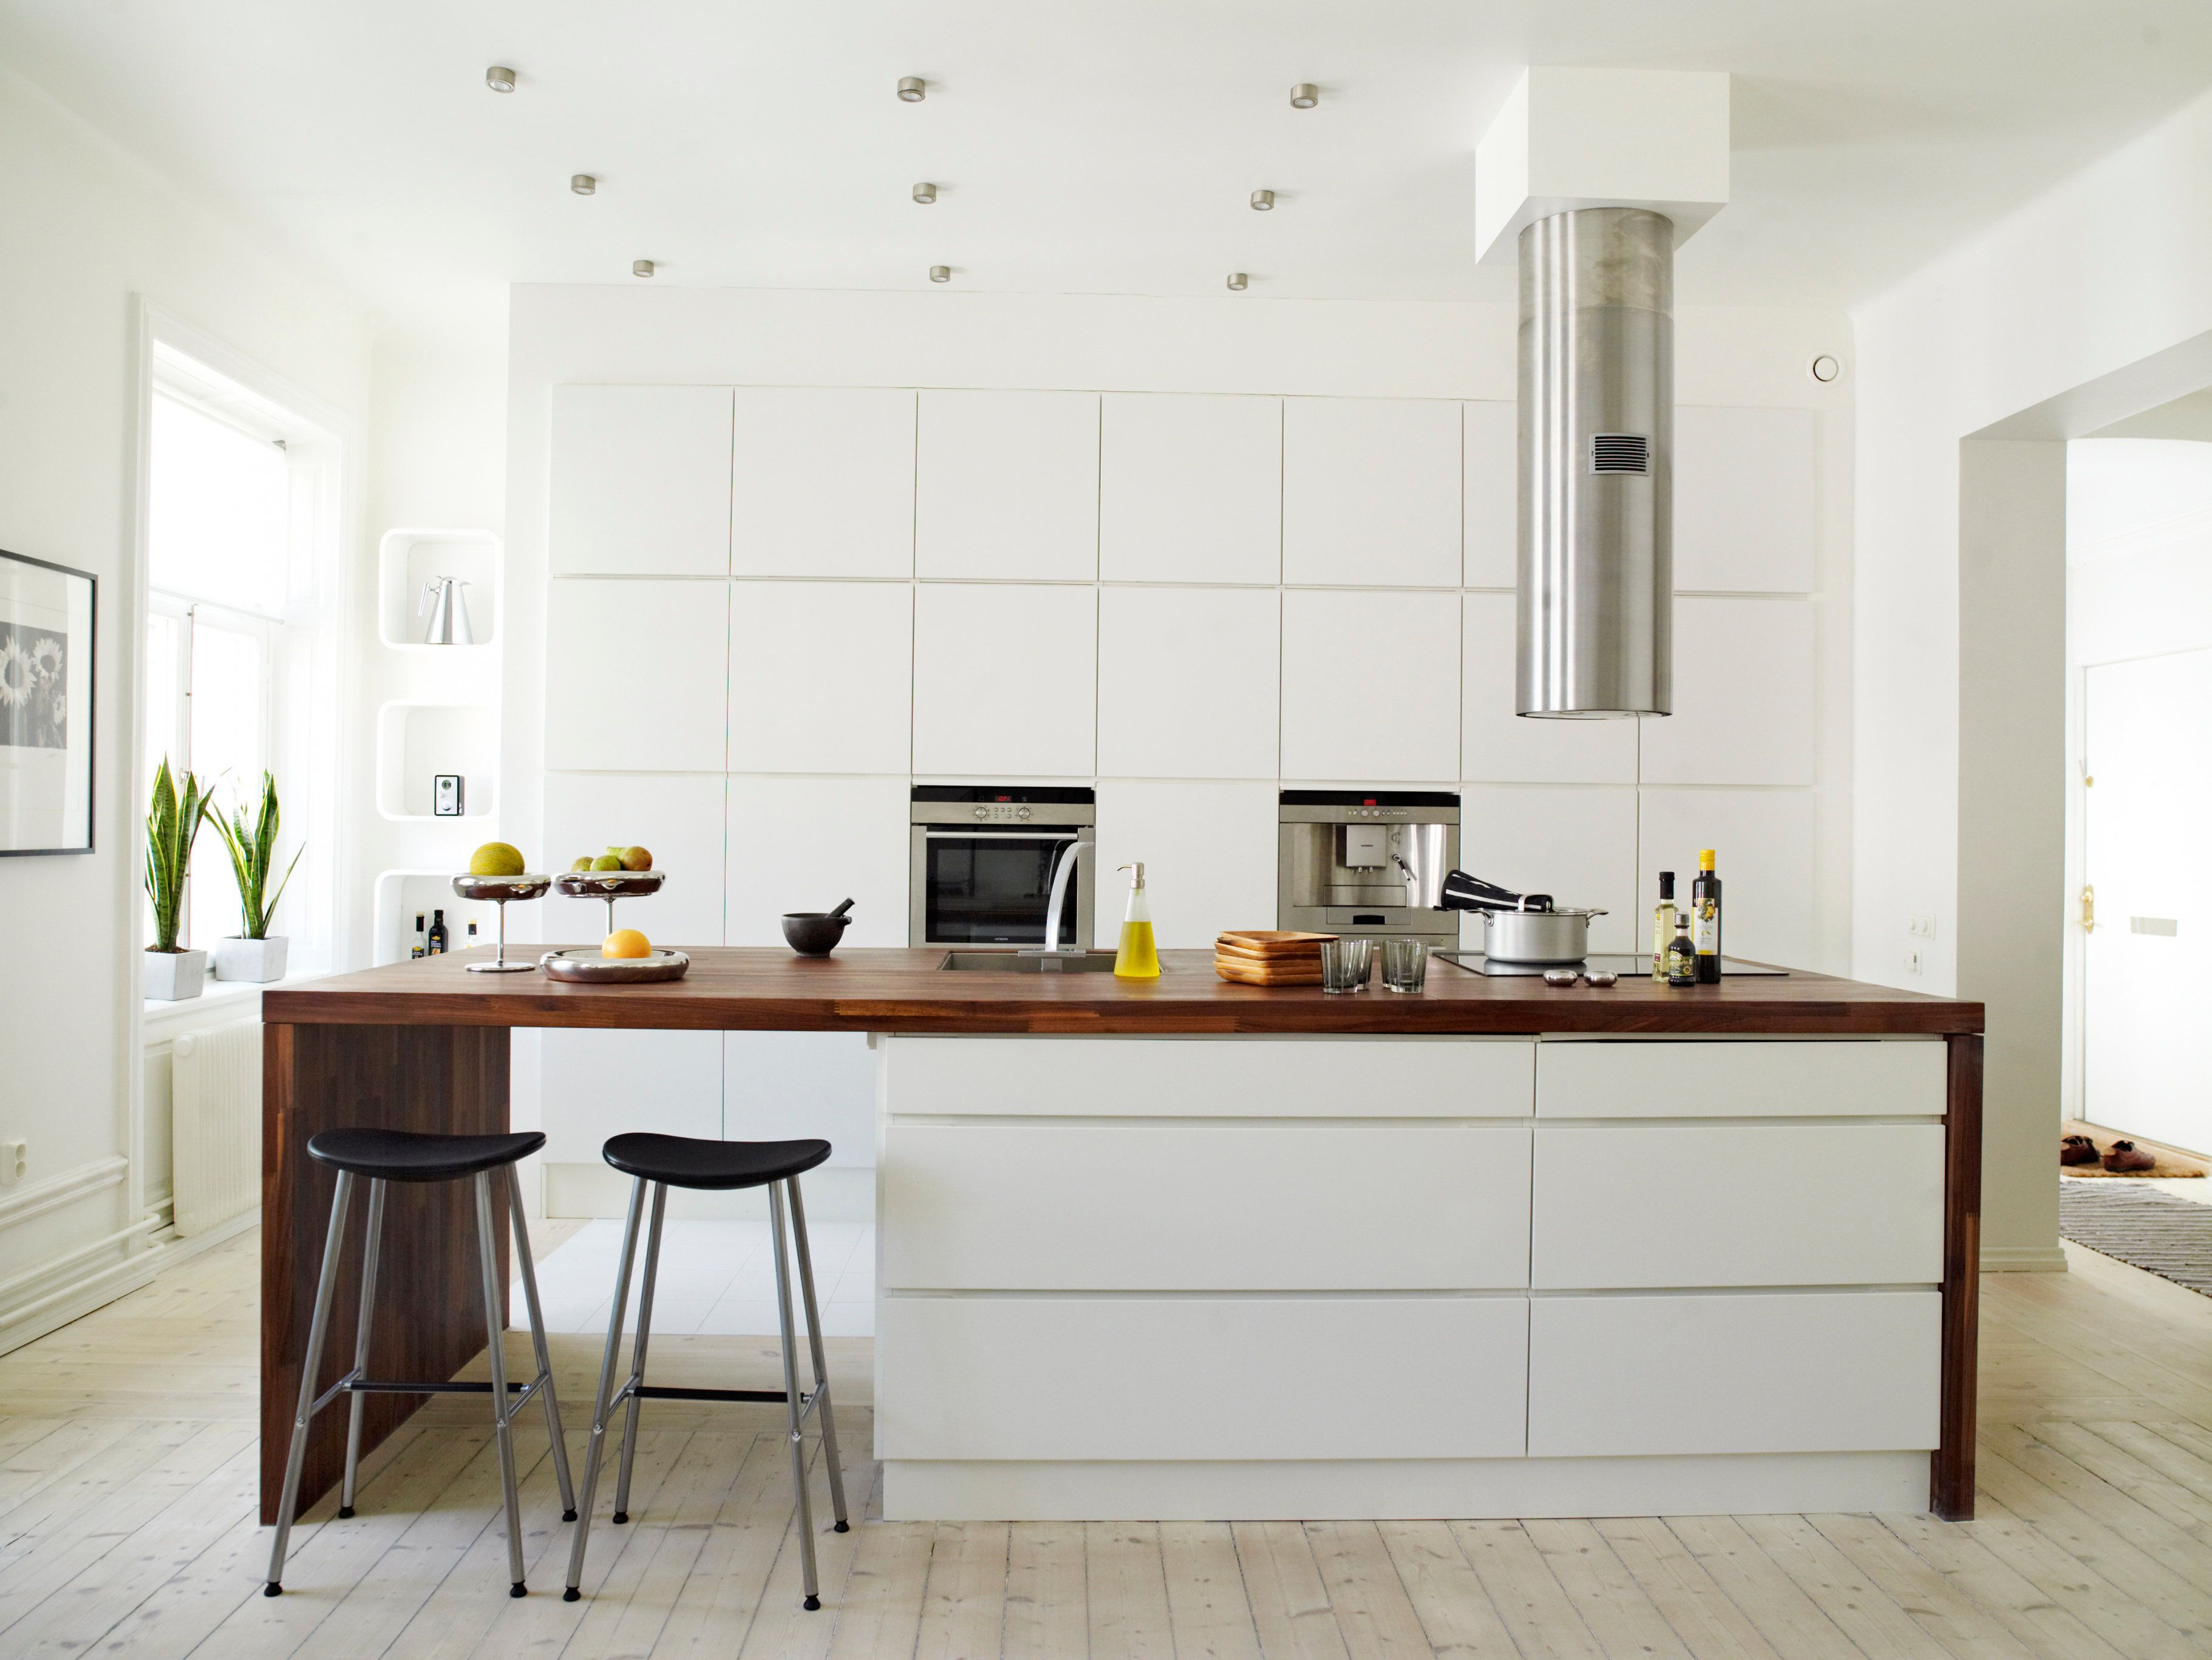 A white kitchen Sweden.